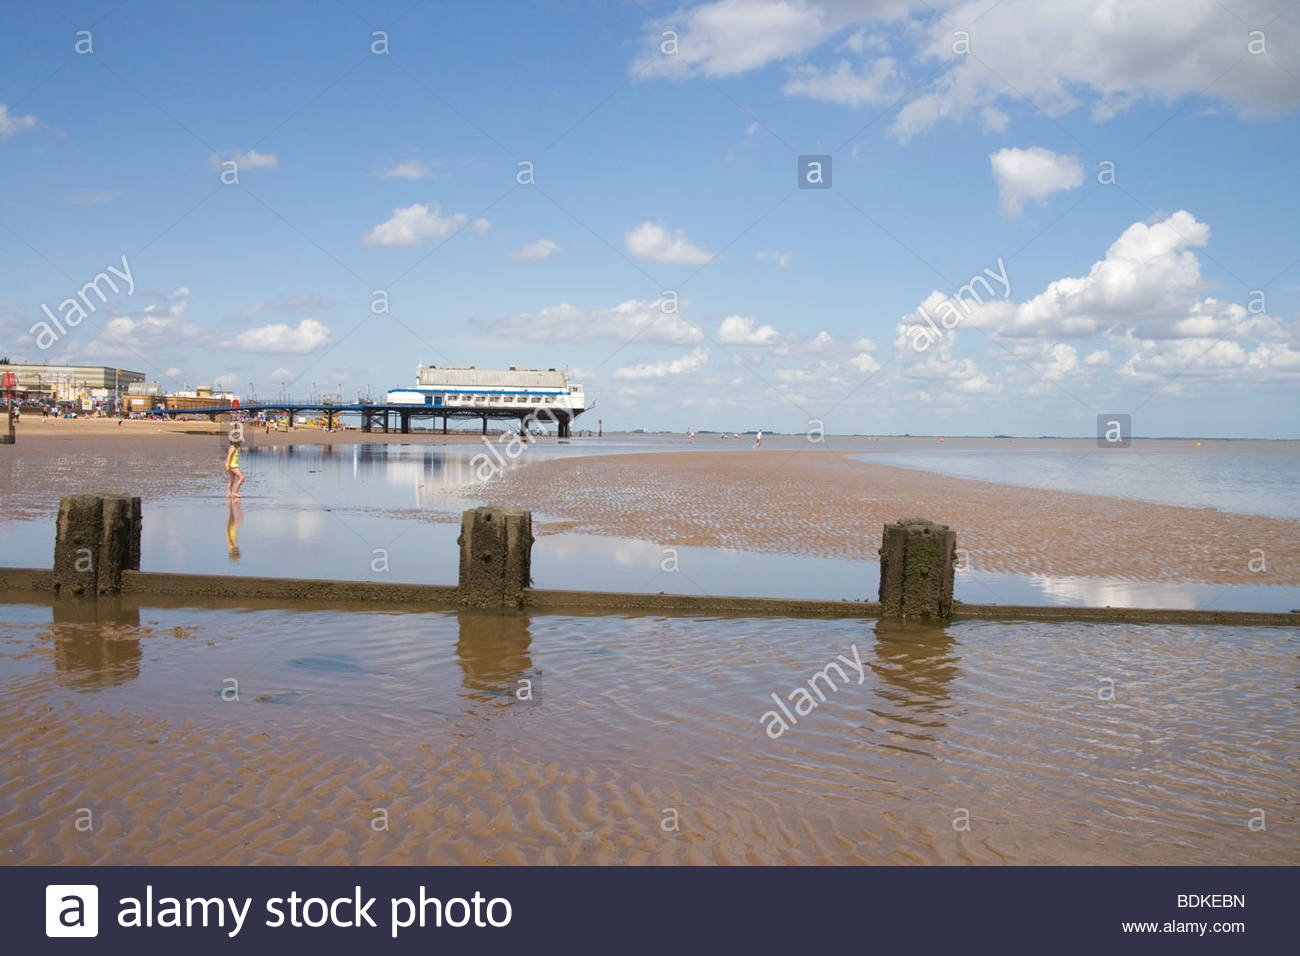 Cleethorpes on the Lincolnshire coast - Stock Image